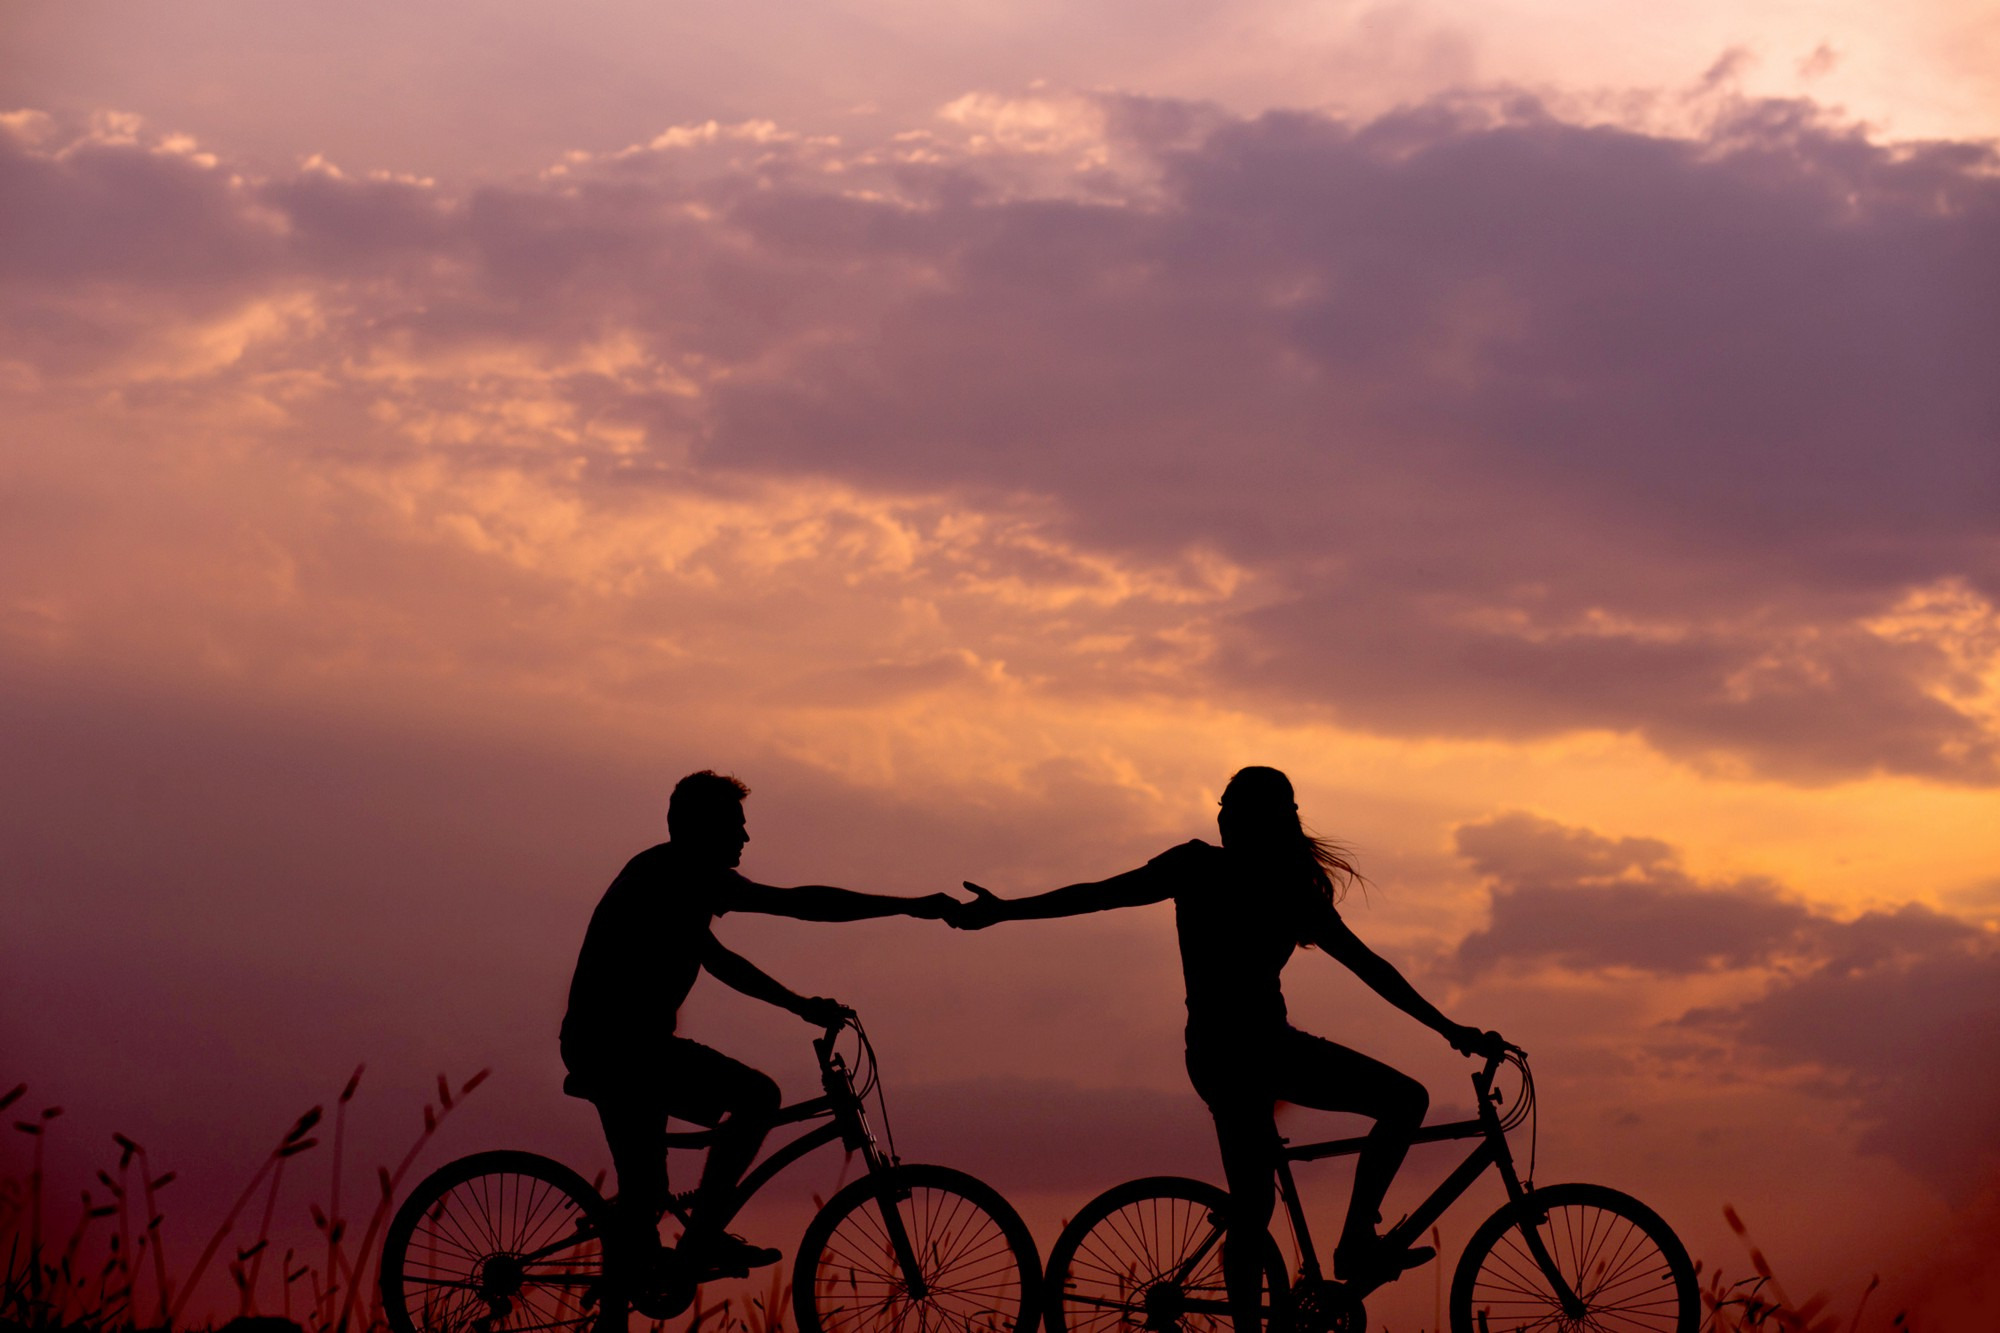 man and woman on bikes with woman reaching back and holding man's hand